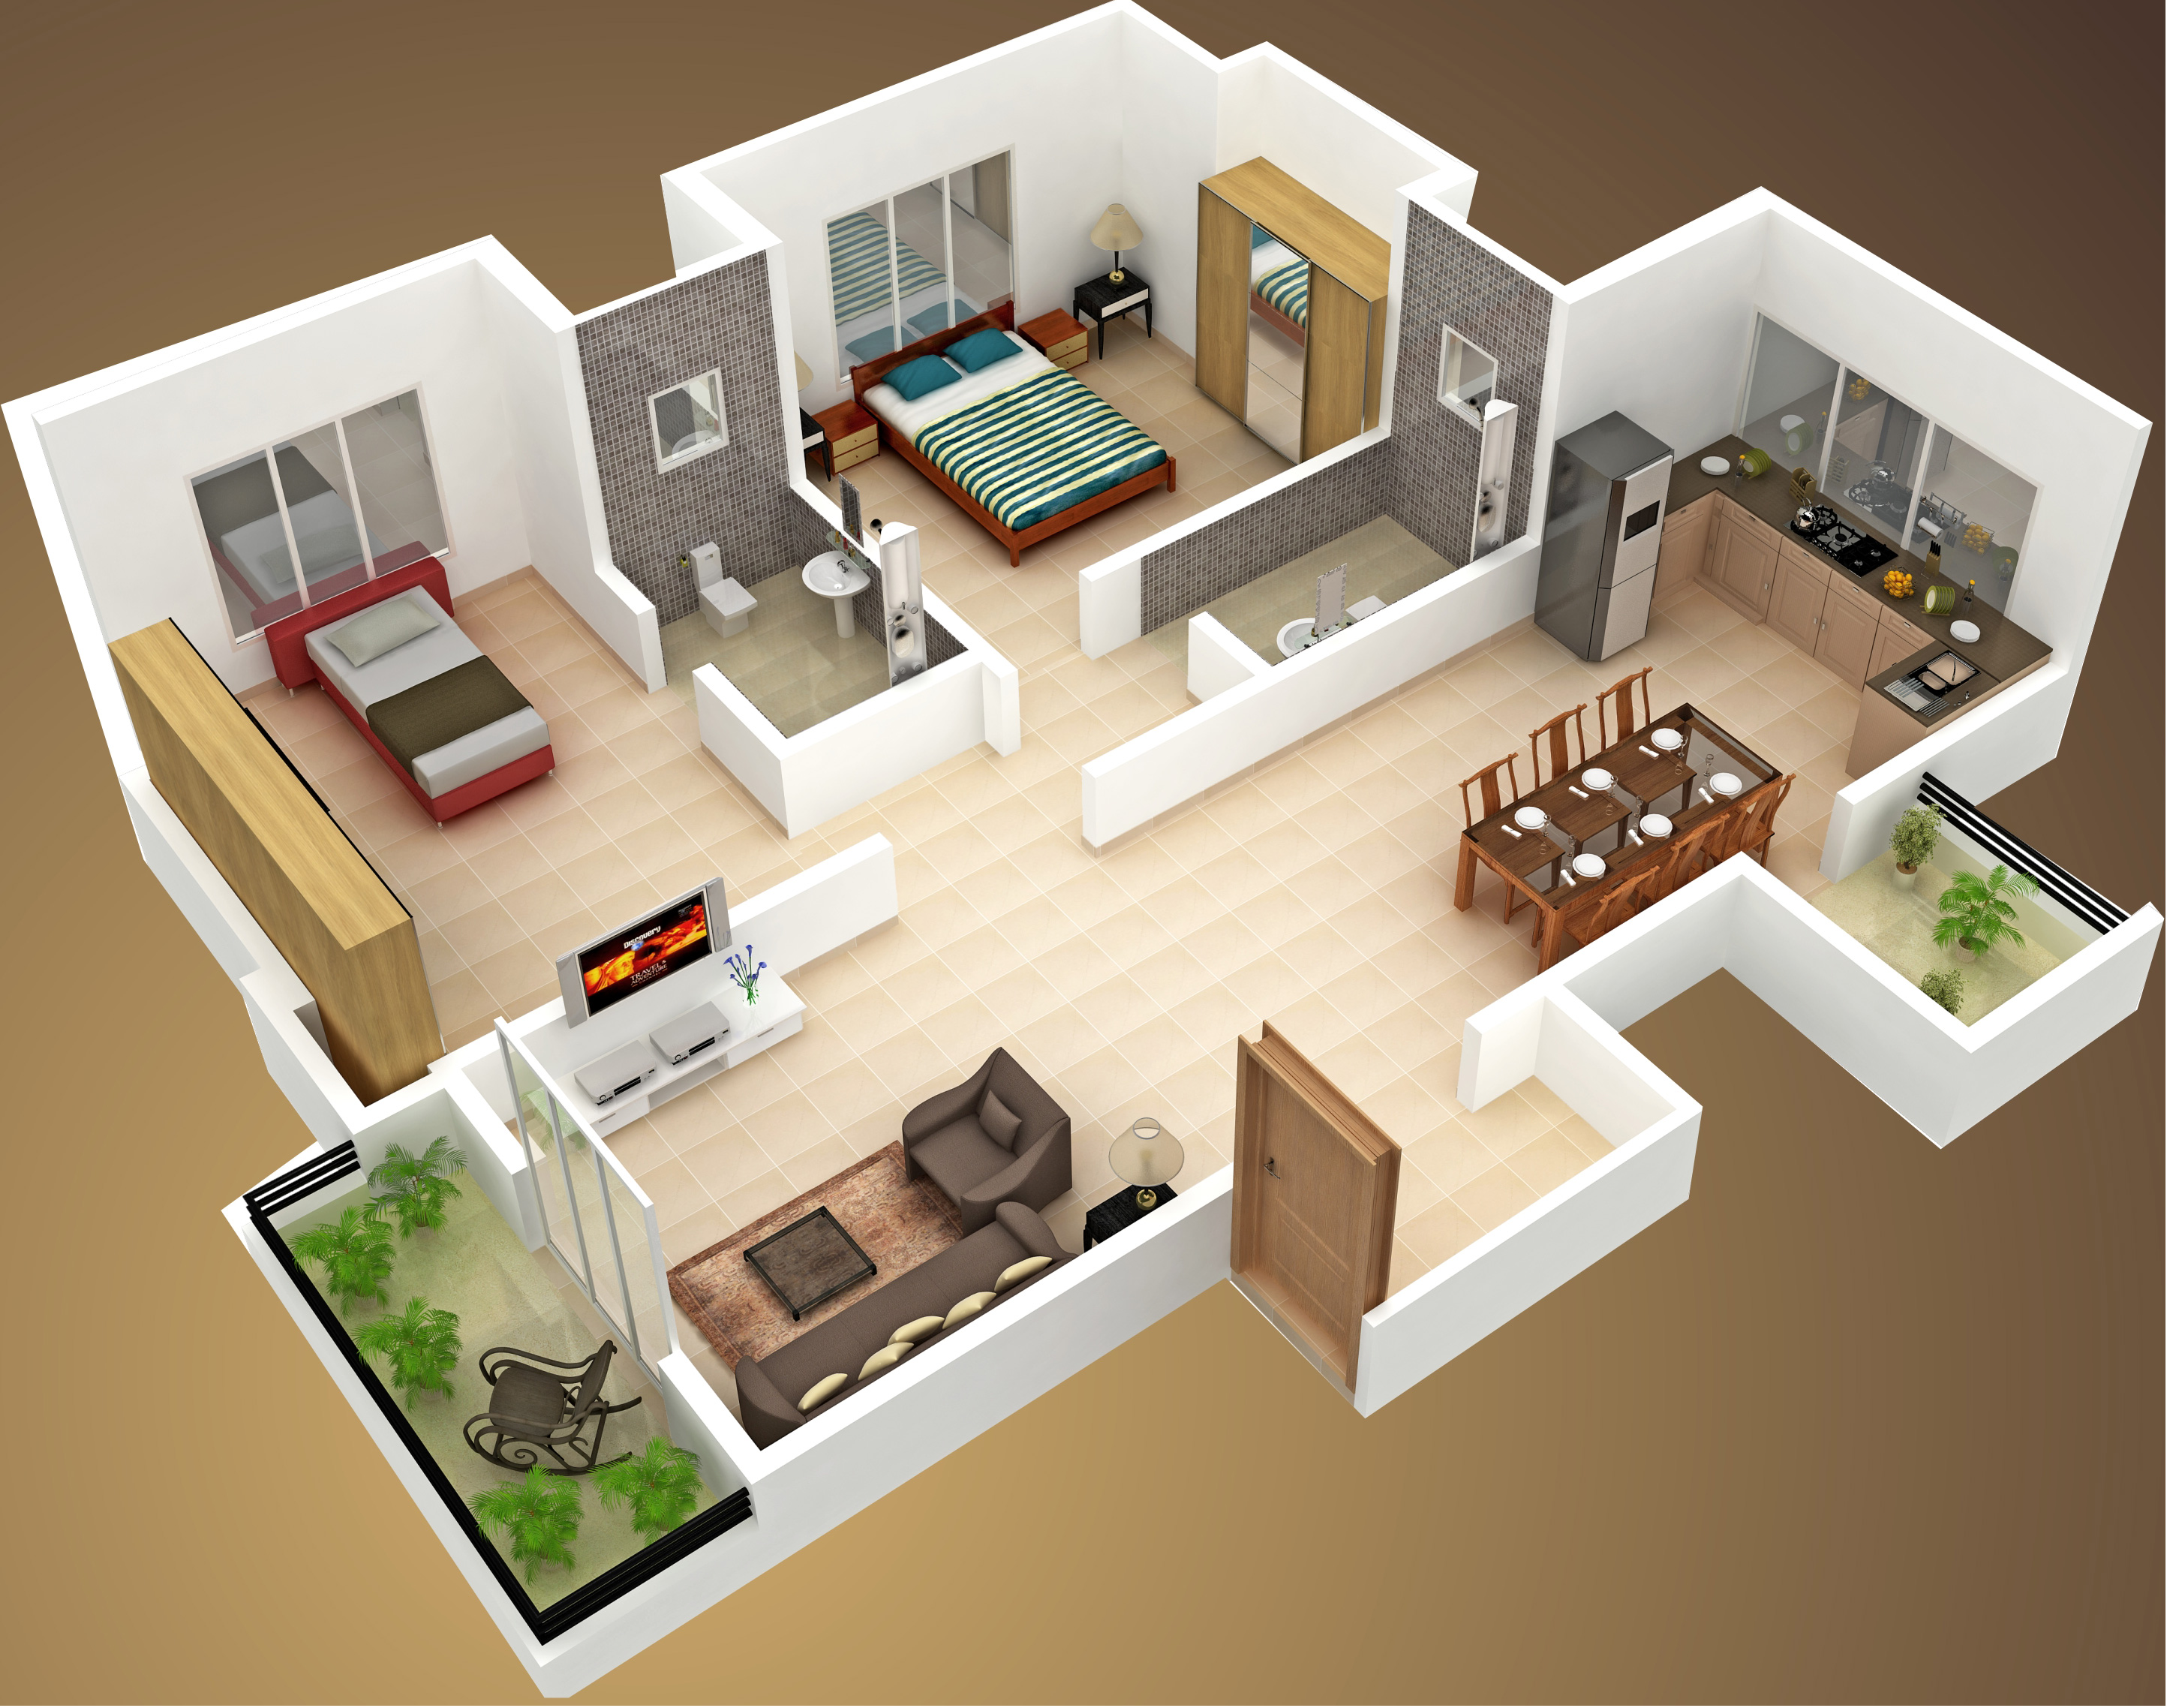 Navkar feel 3d views House plan 3d view